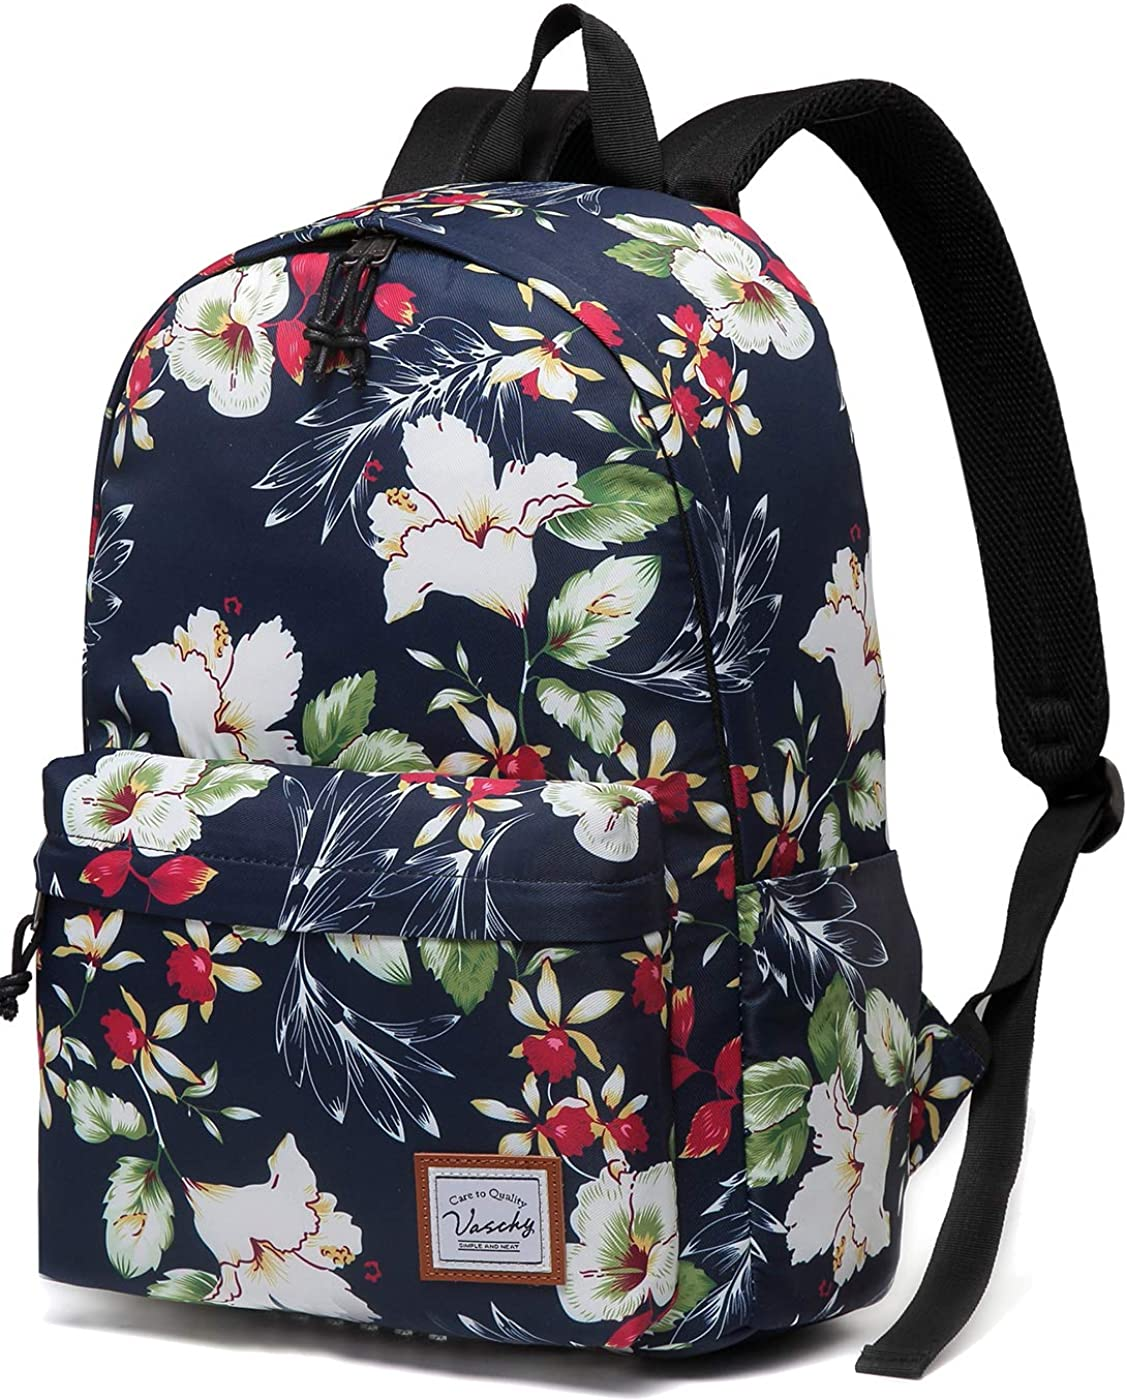 Laptop Backpack Lightweight Waterproof Travel Backpack Double Zipper Design with Blooming Garden Pattern School Bag Laptop Bookbag Daypack for Women Kids